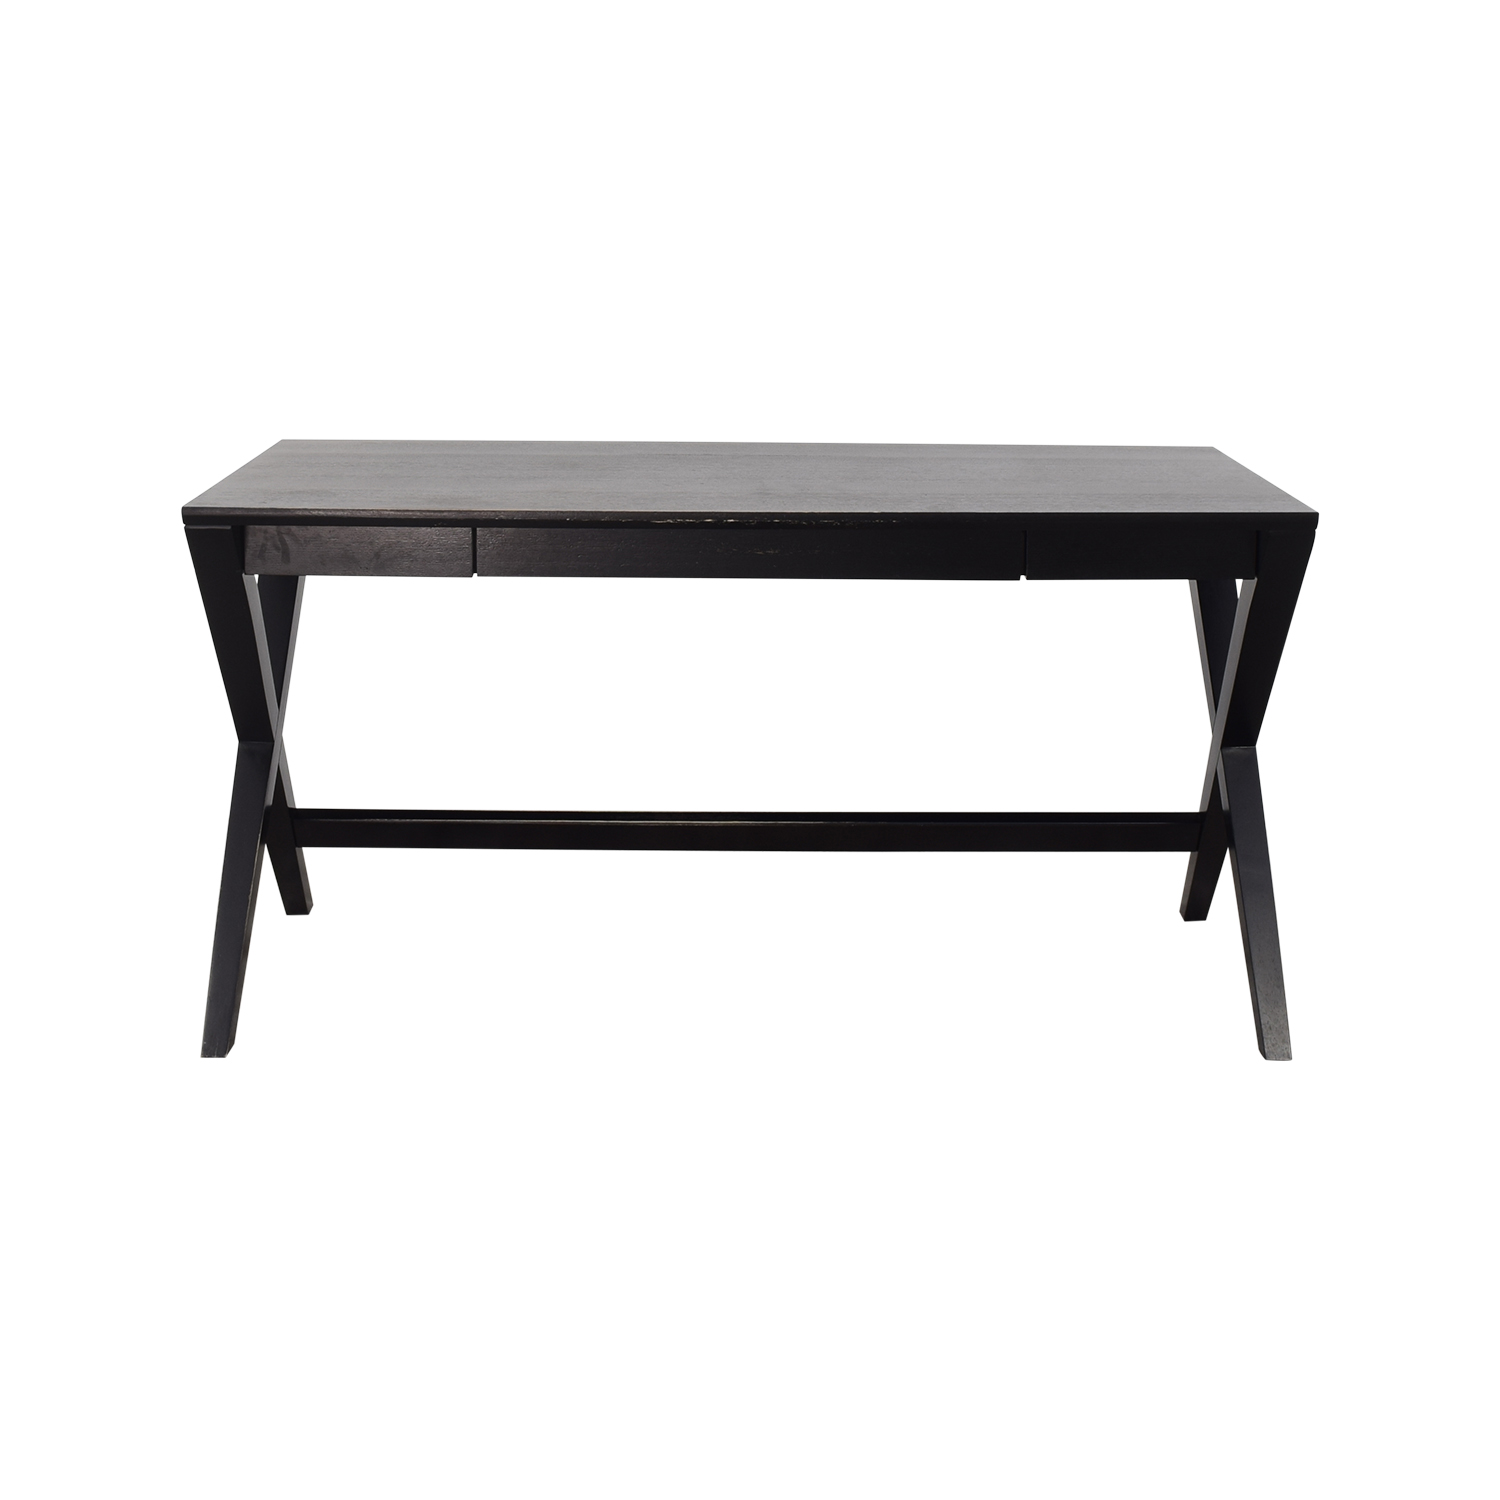 Crate & Barrel Crate & Barrel Spotlight Ebony X-Leg Desk nyc